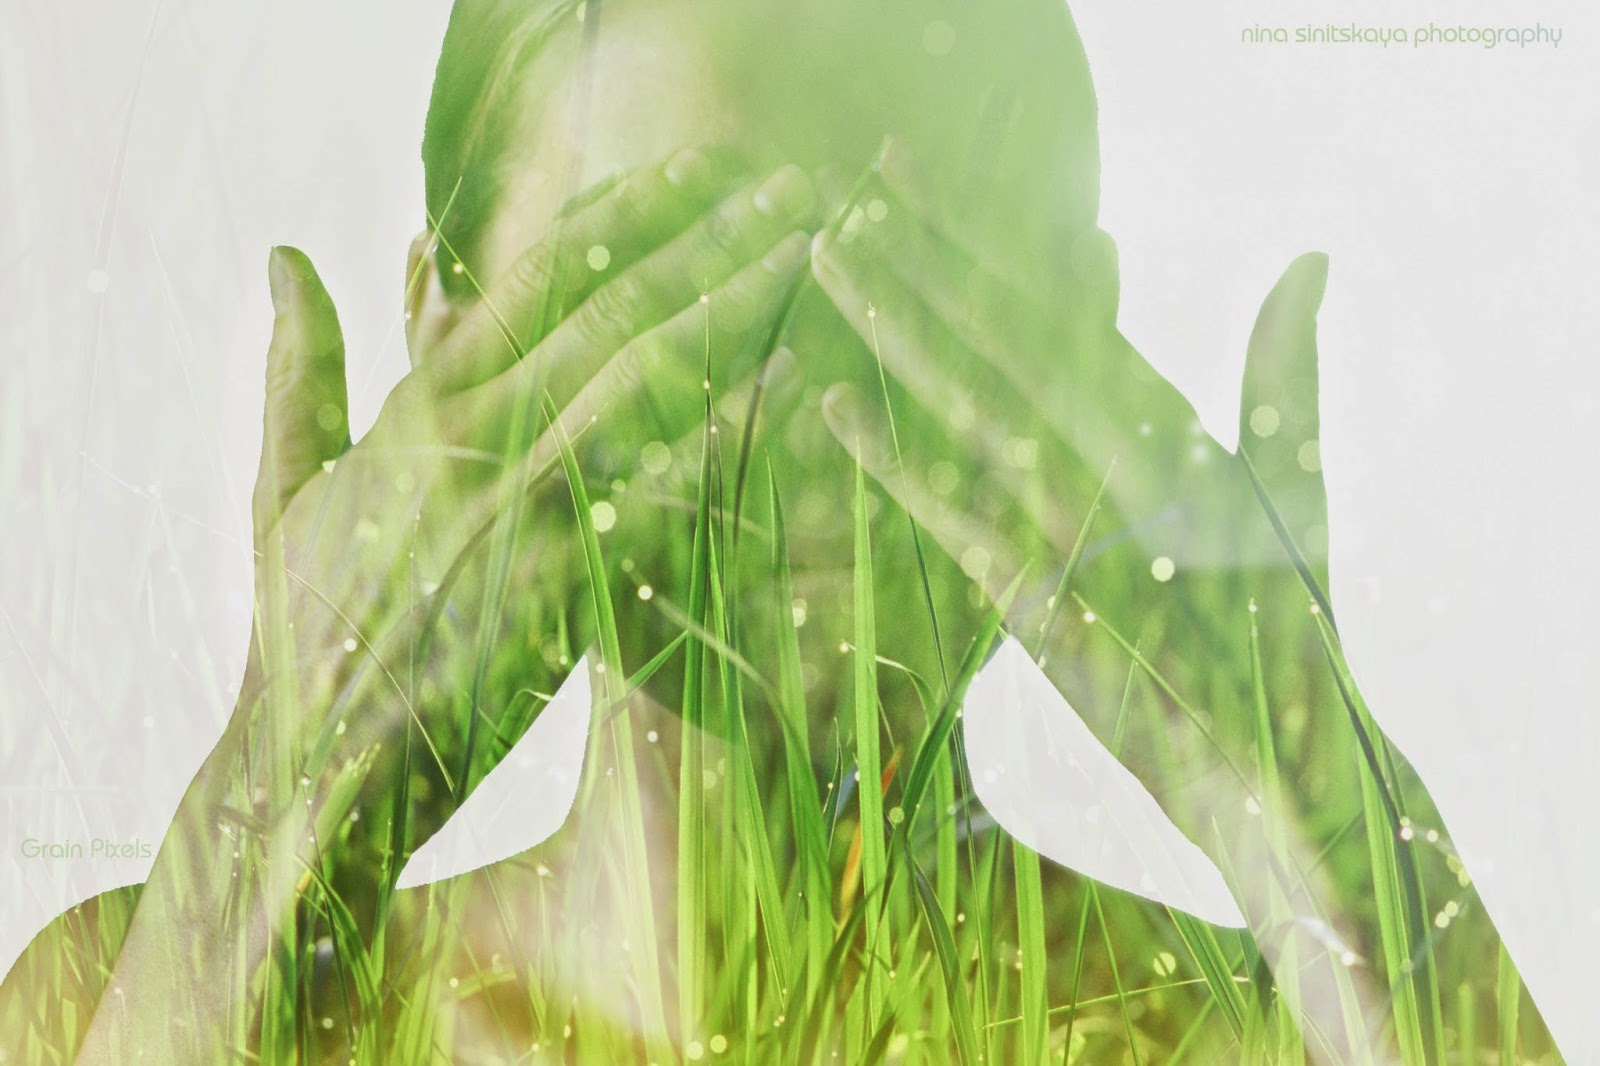 Double exposure photograph of a girl and a grass